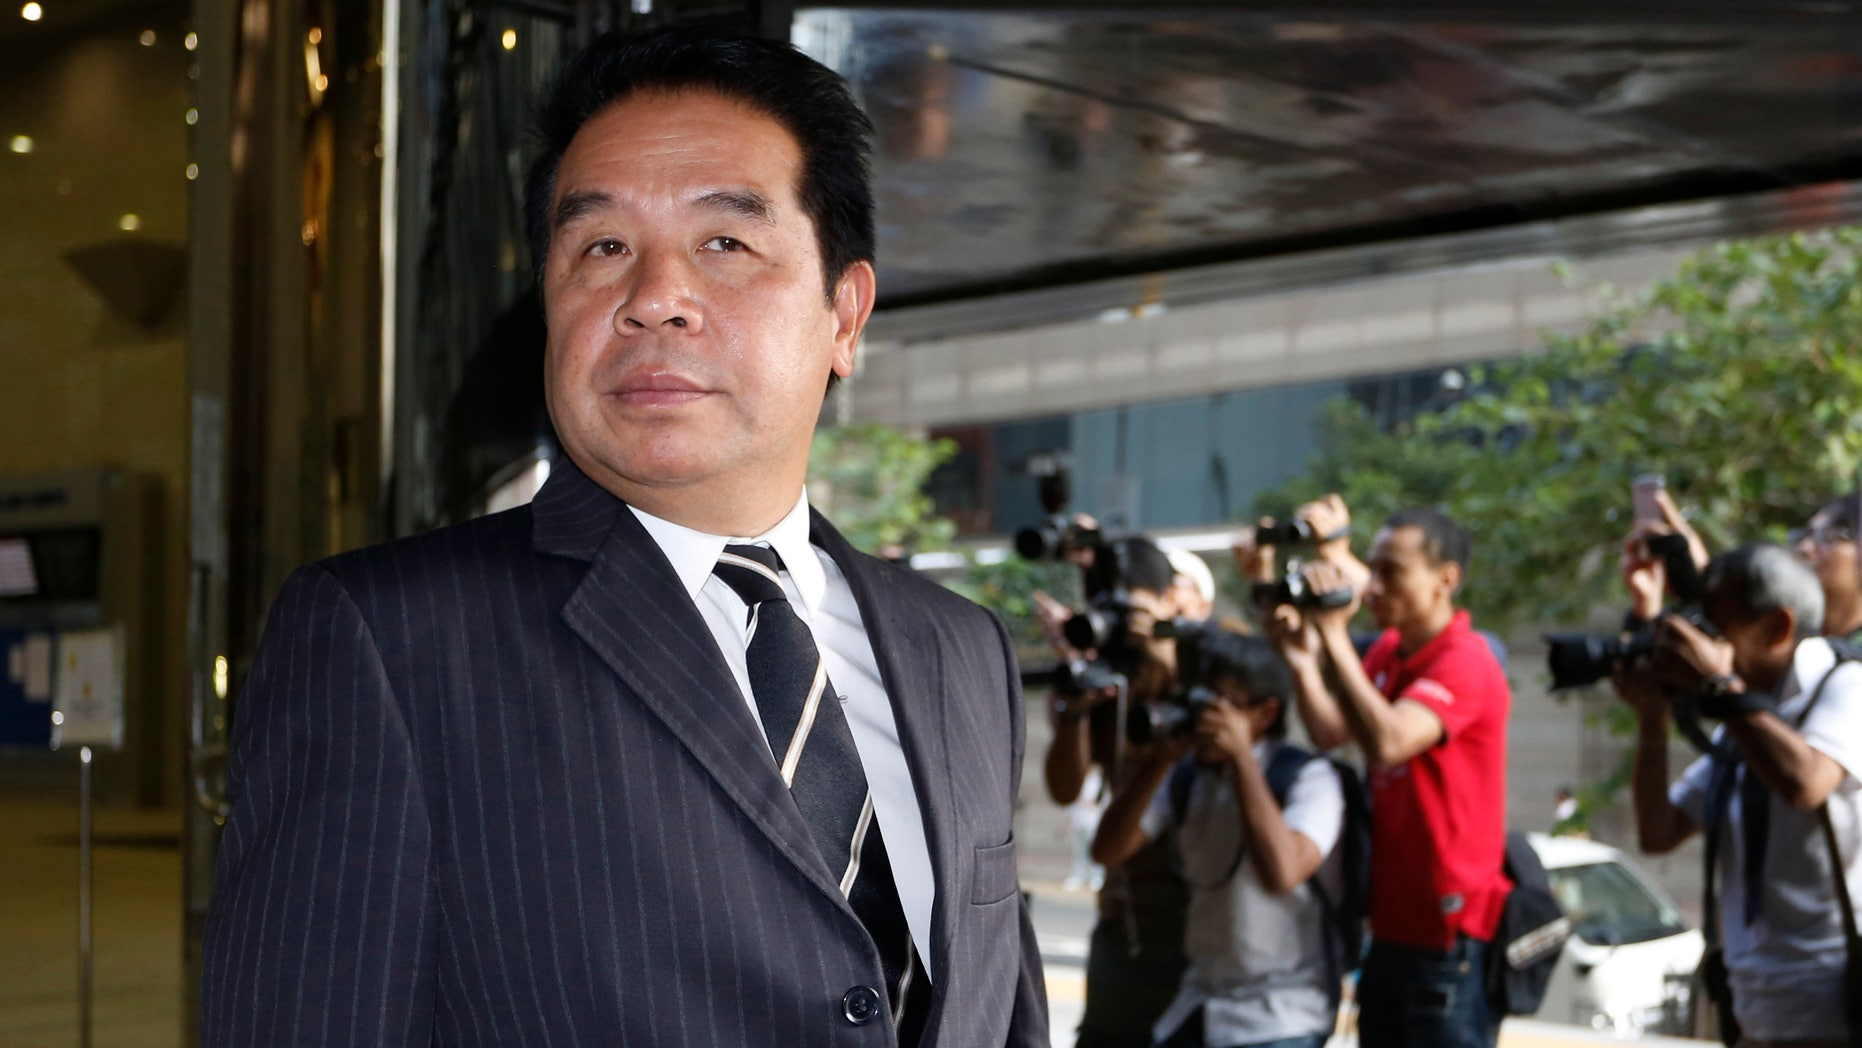 FILE - In this Tuesday, Oct. 15, 2013 file photo, Birmingham City F.C. owner Carson Yeung leaves Hong Kong District Court in Hong Kong after giving testimony in his money laundering trial. Yeung said he's a celebrity hairdresser, property developer, casino high-roller and millionaire stock investor. Hong Kong prosecutors said the owner of the football club is a money launderer who grossly inflated his income. (AP Photo/Vincent Yu, File)